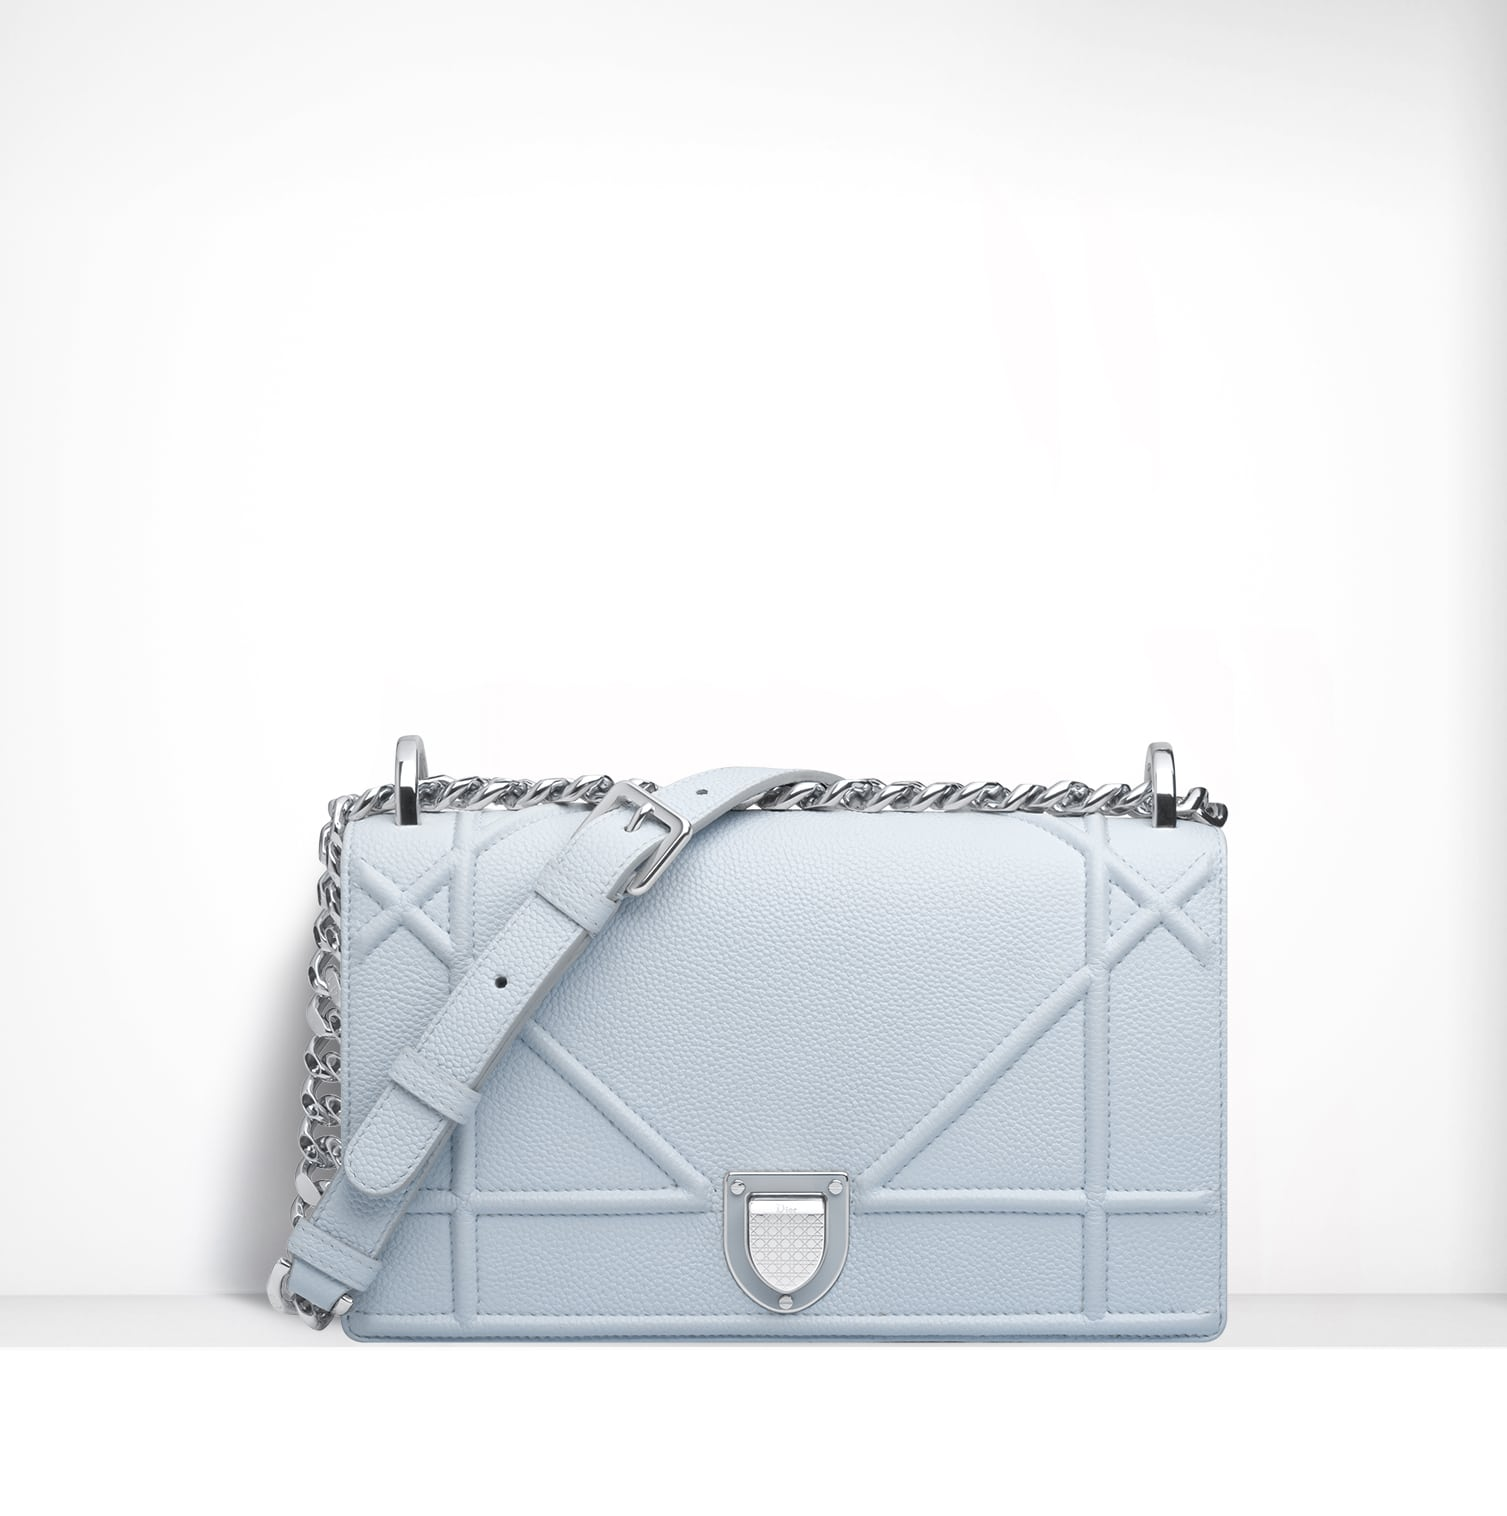 dior spring summer 2015 bag collection featuring furistic details